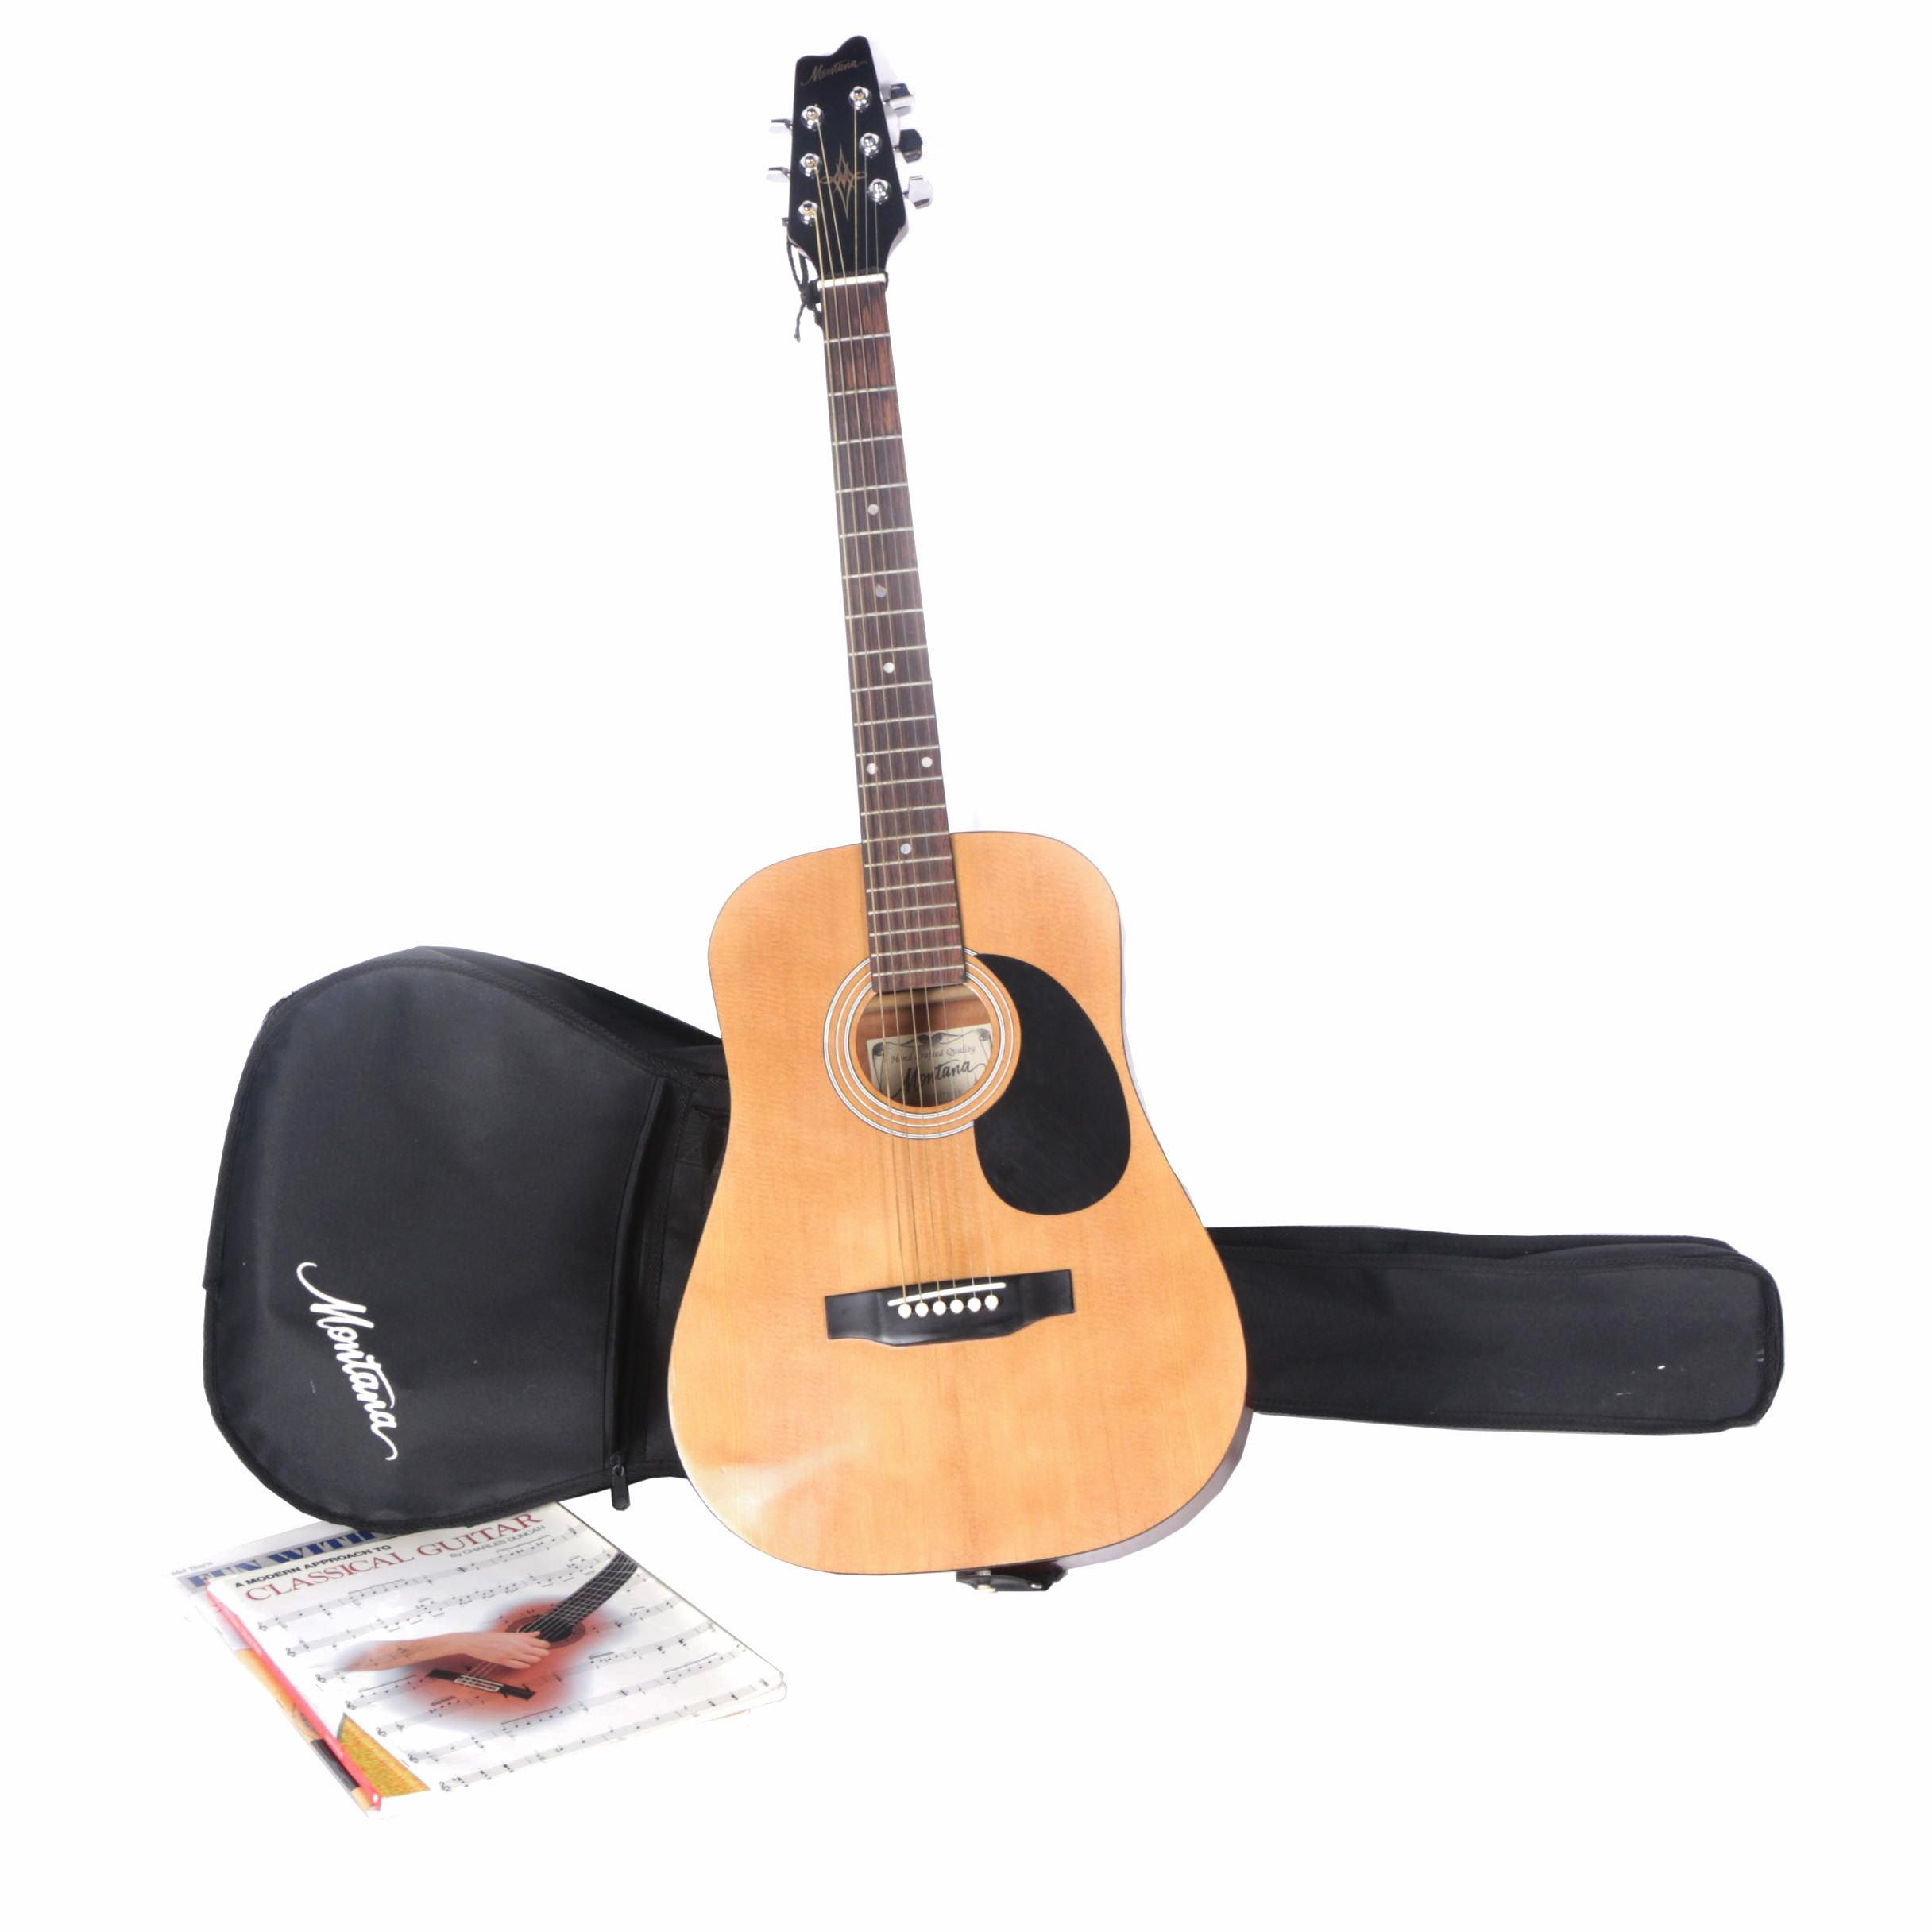 Montana MT570GK Dreadnought Acoustic Guitar with Gig Bag